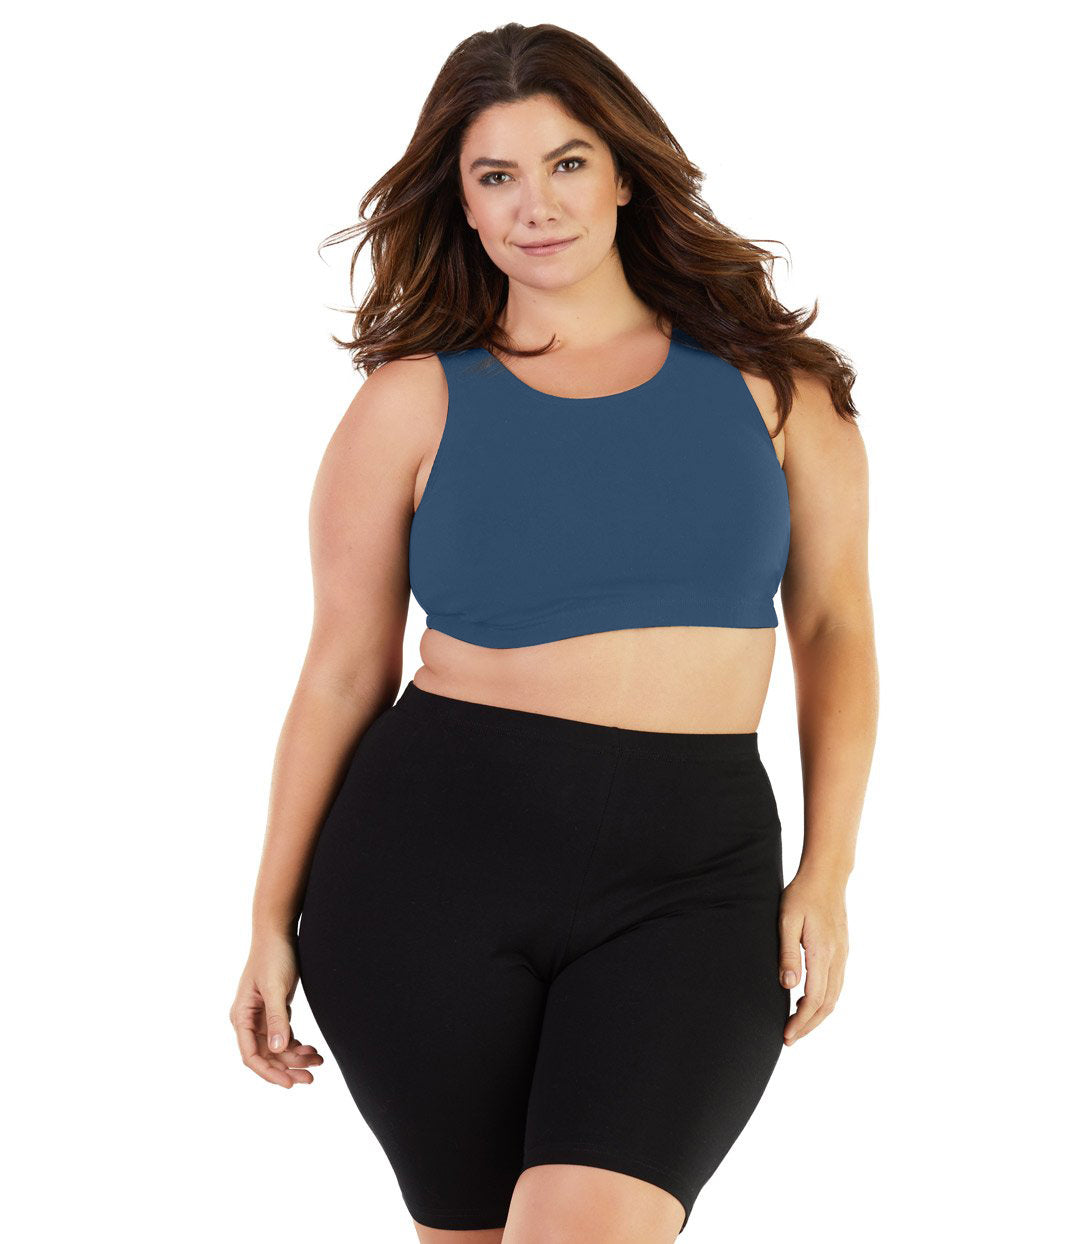 Stretch Naturals Crossback Bra Top Classic Colors